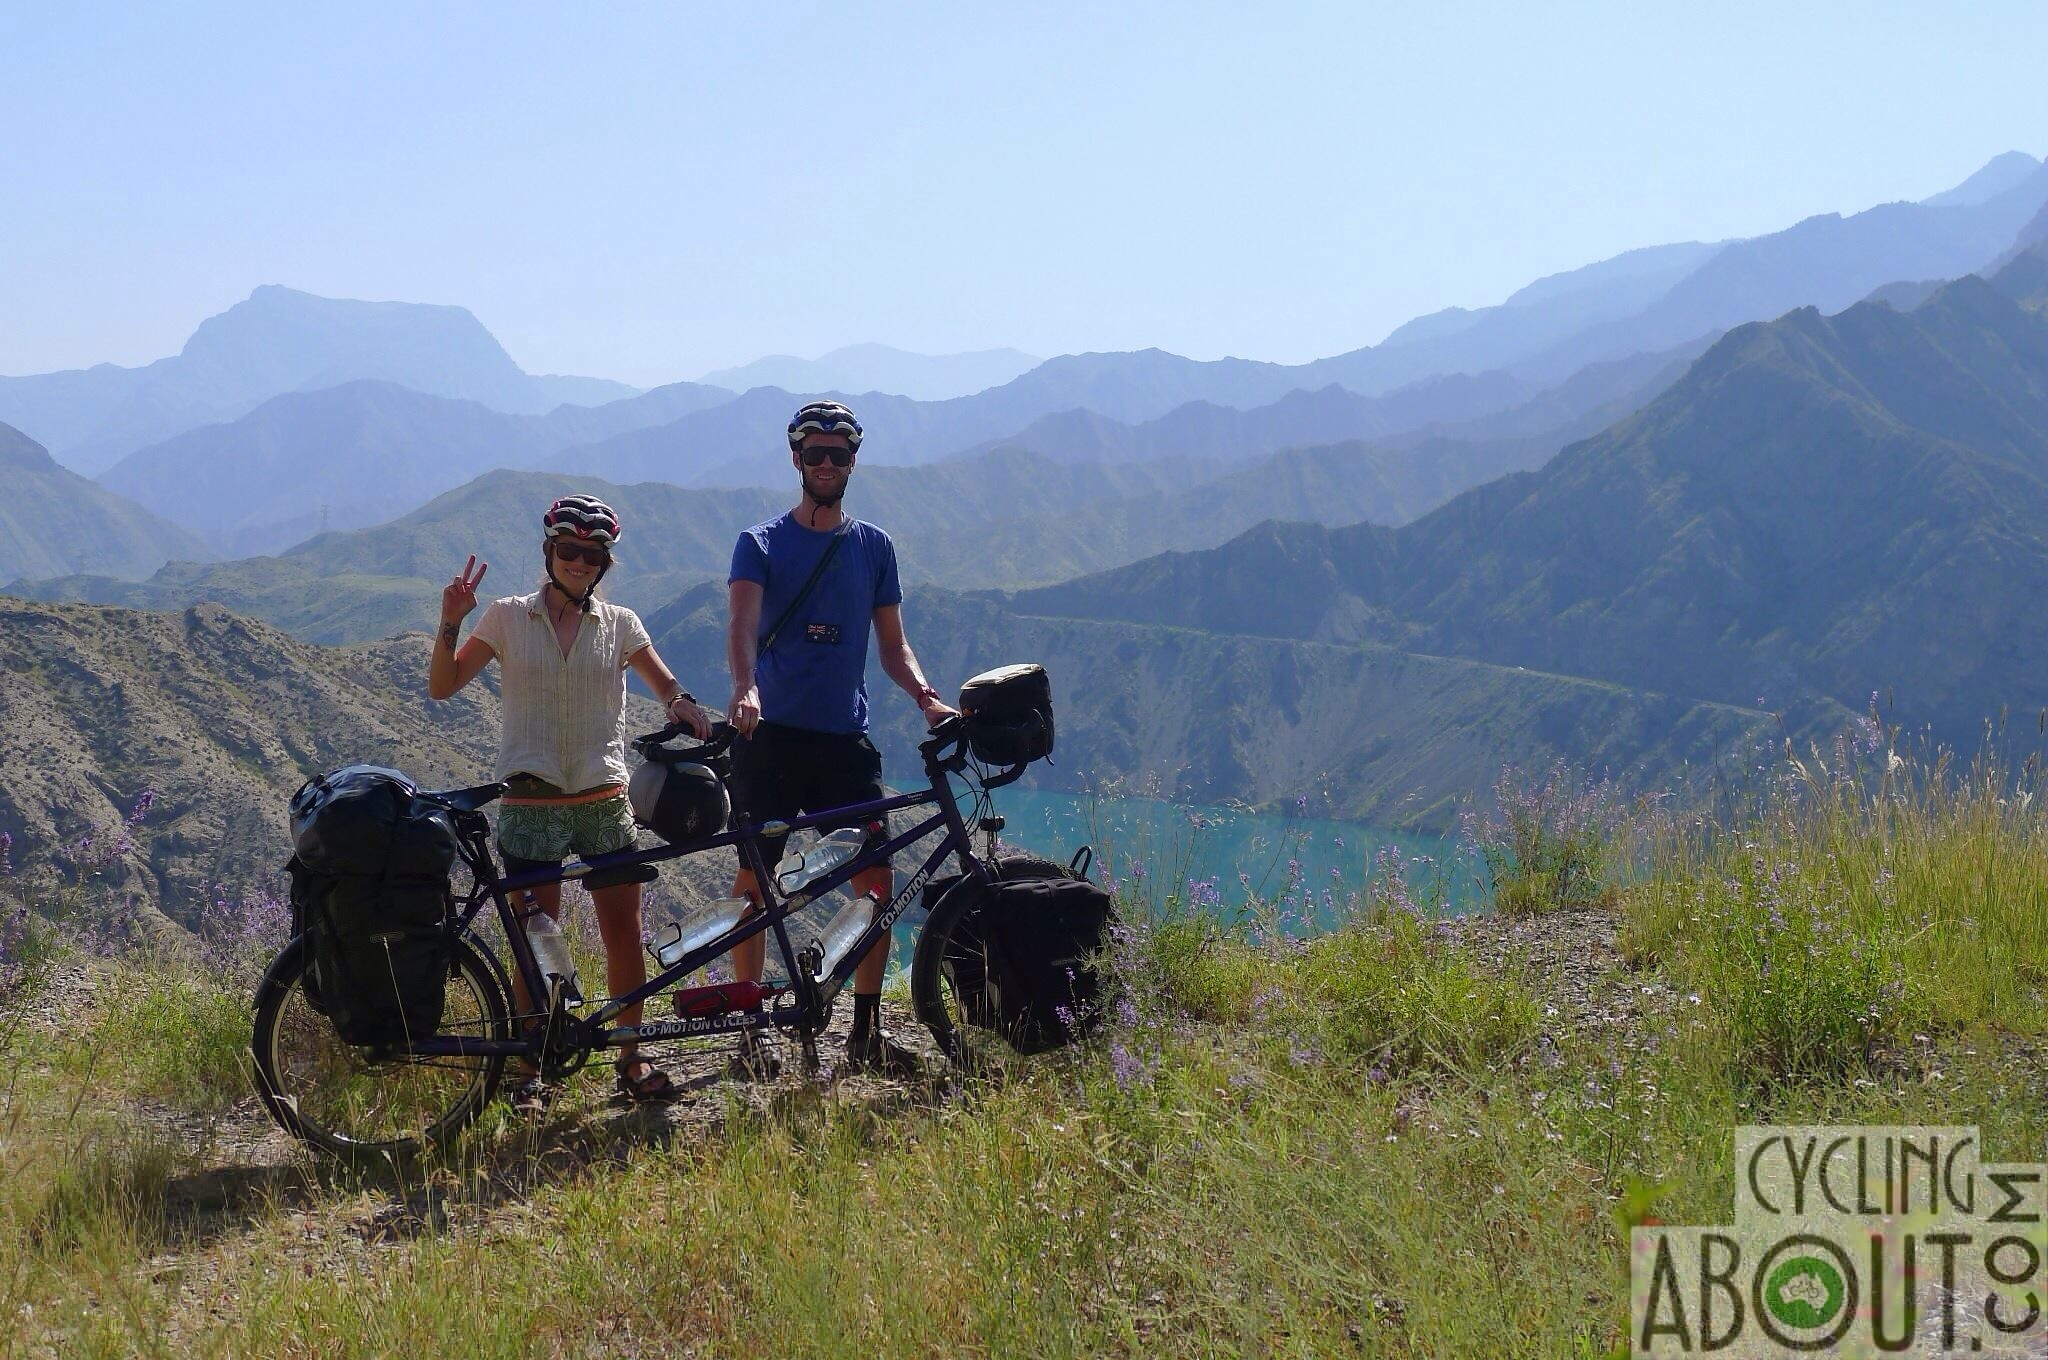 Bicycle touring tandem in Kyrgyzstan